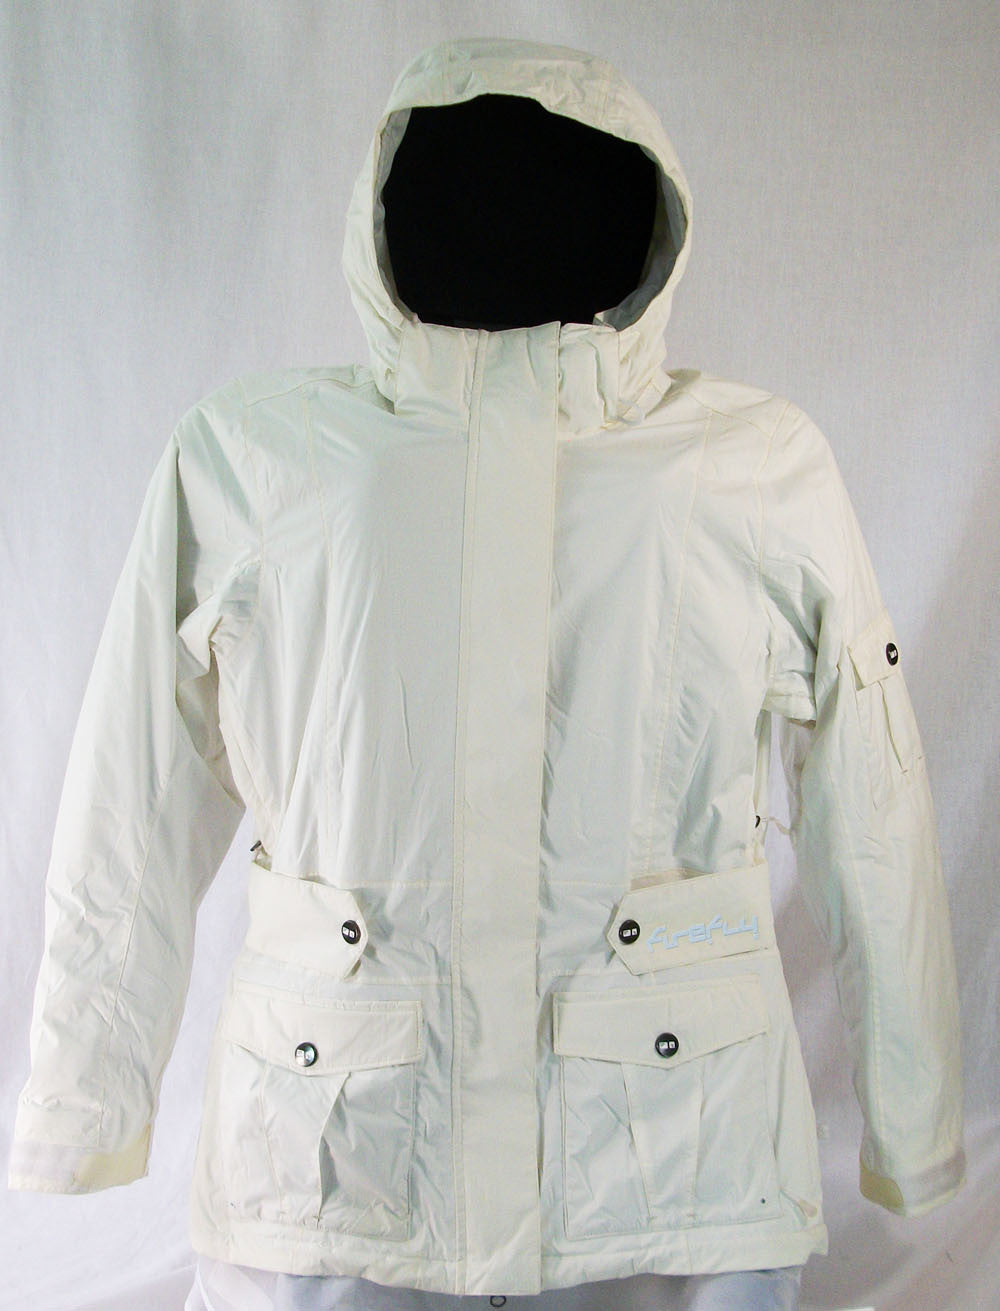 Firefly Victoria Womens Snowboard Ski Jacket Bright White Medium